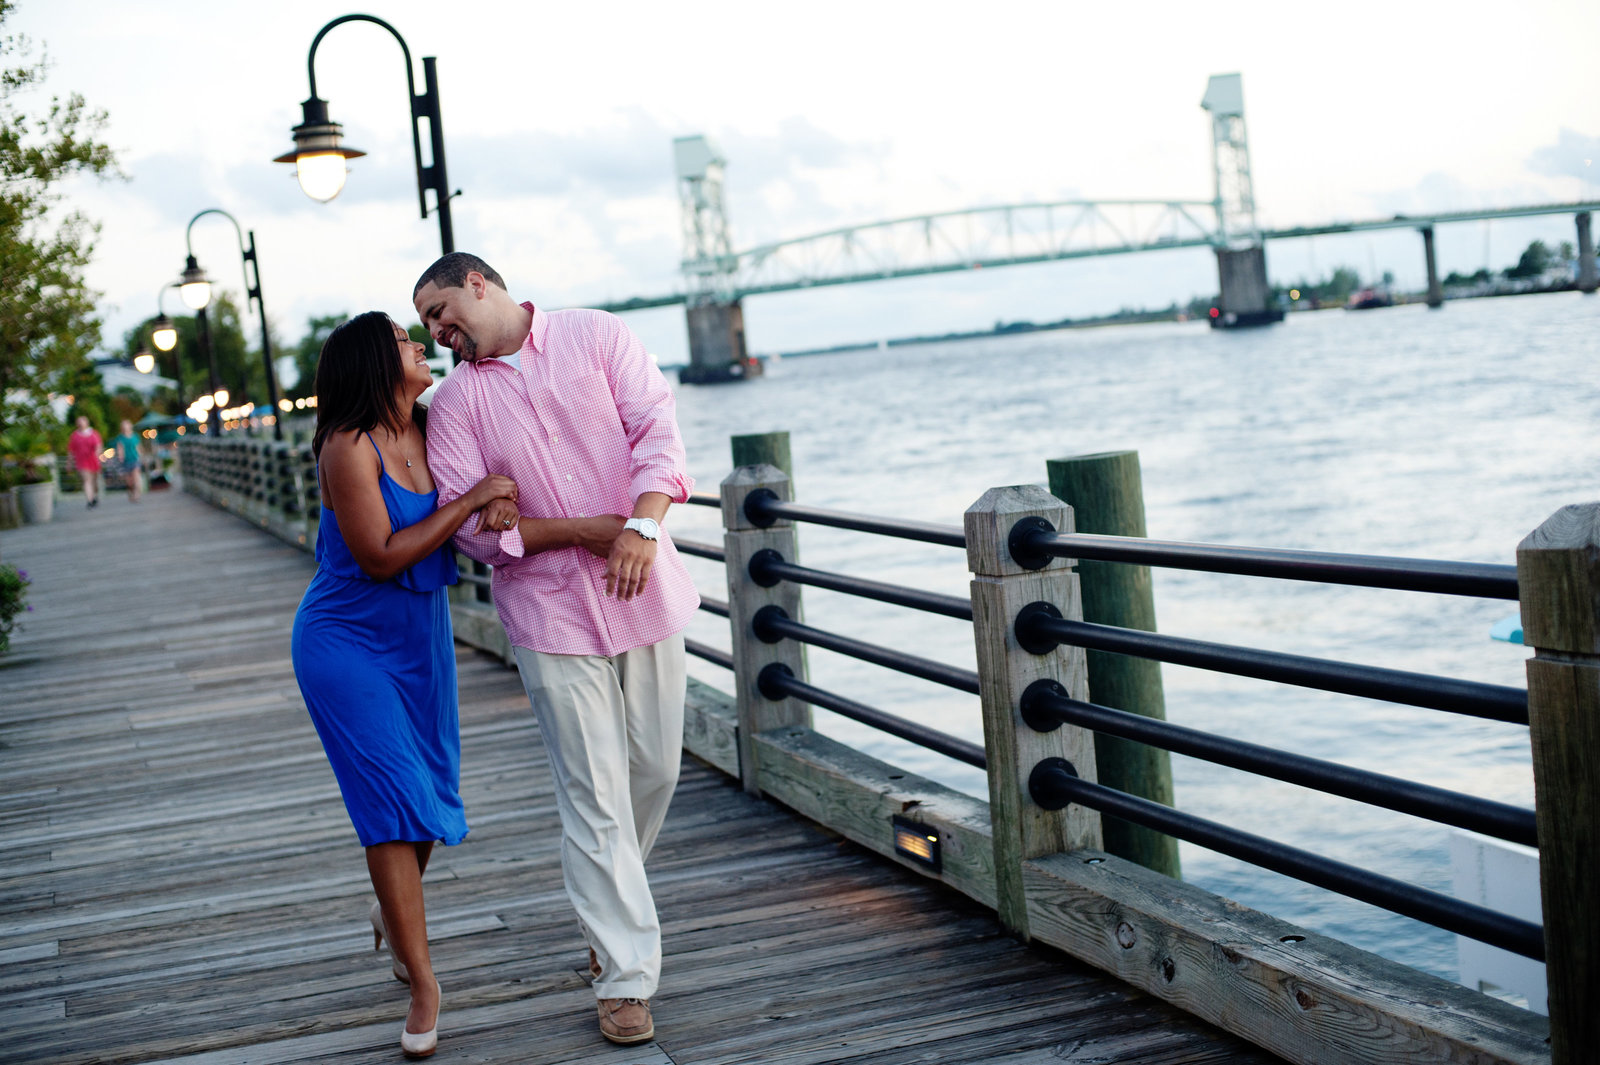 a couple walk holding hands along the river in downtown wilmington